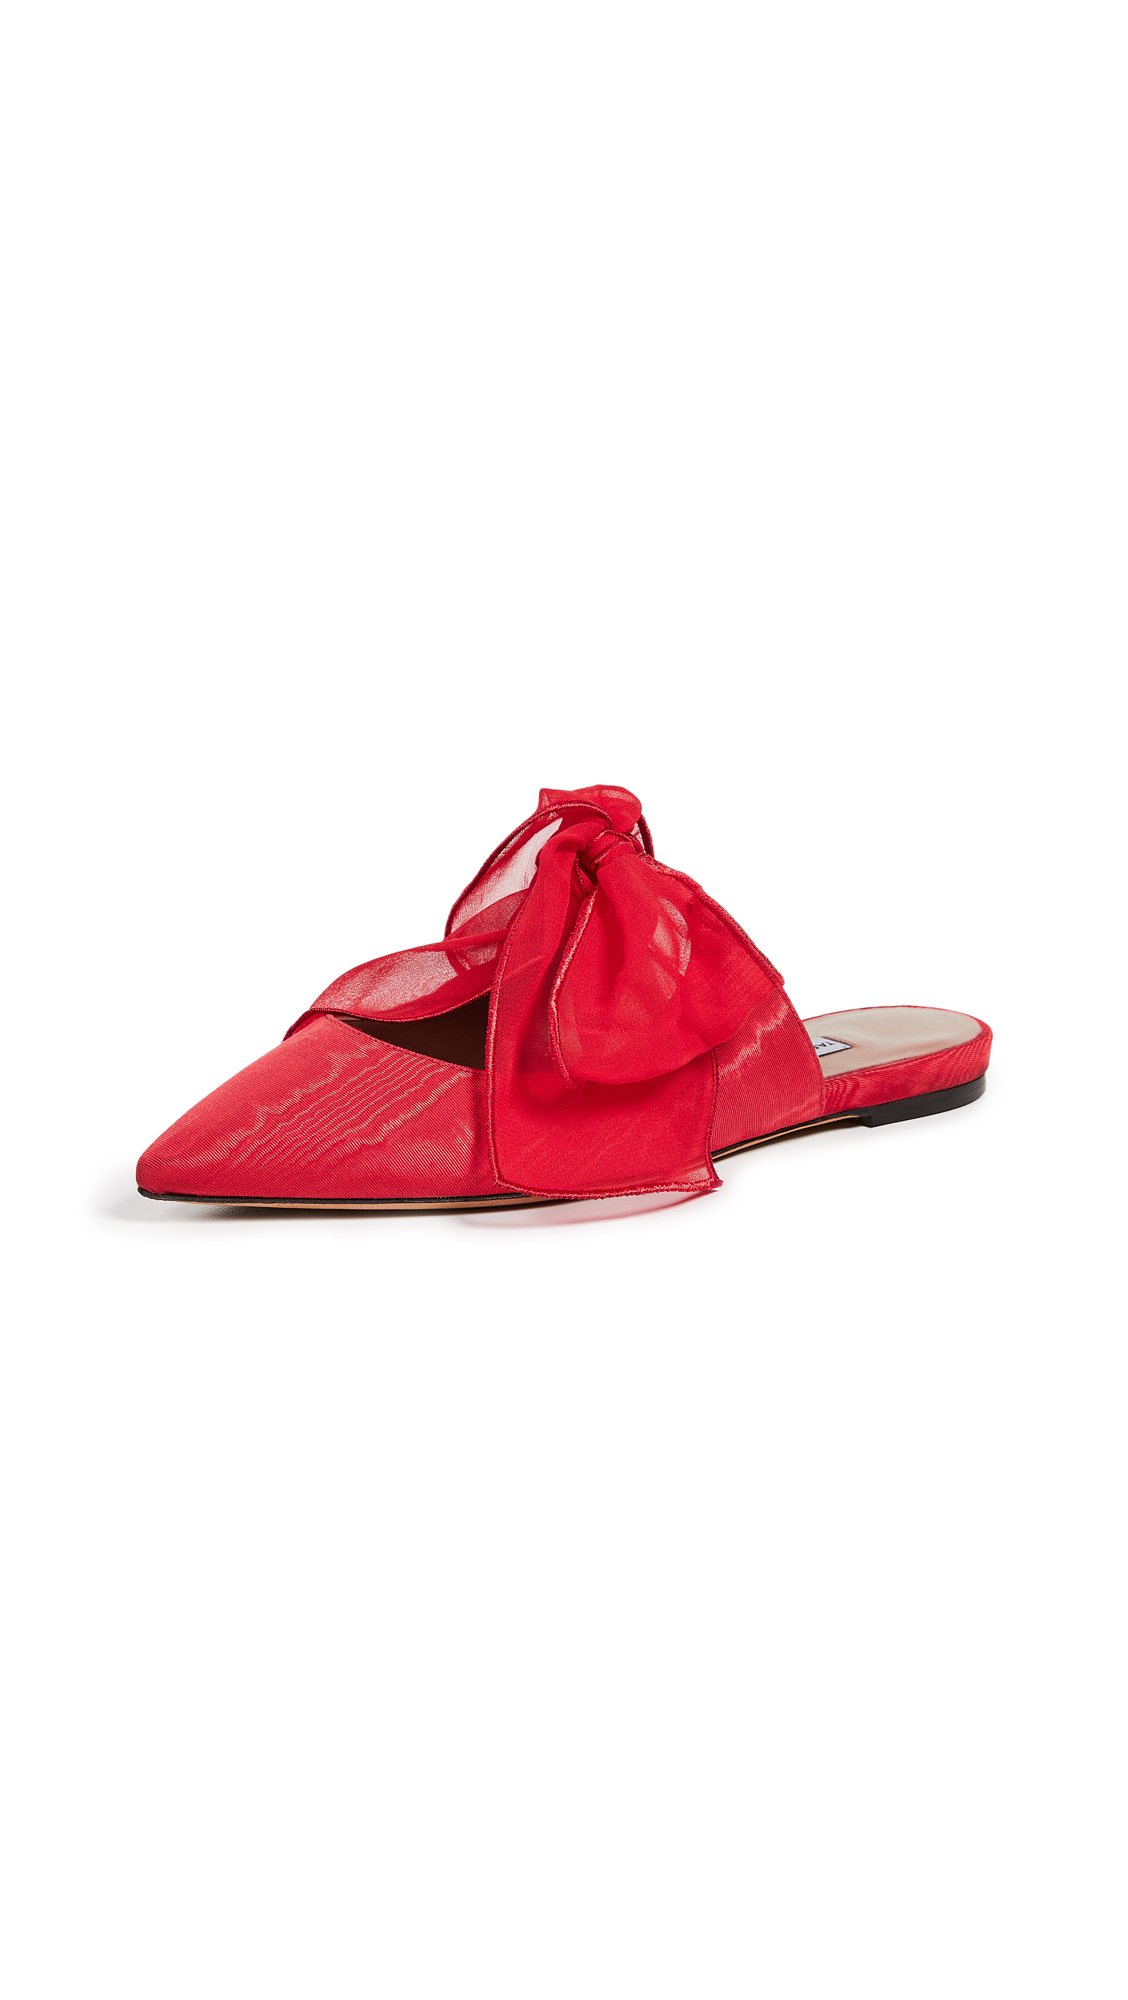 Tabitha Simmons Aida Mules - Red